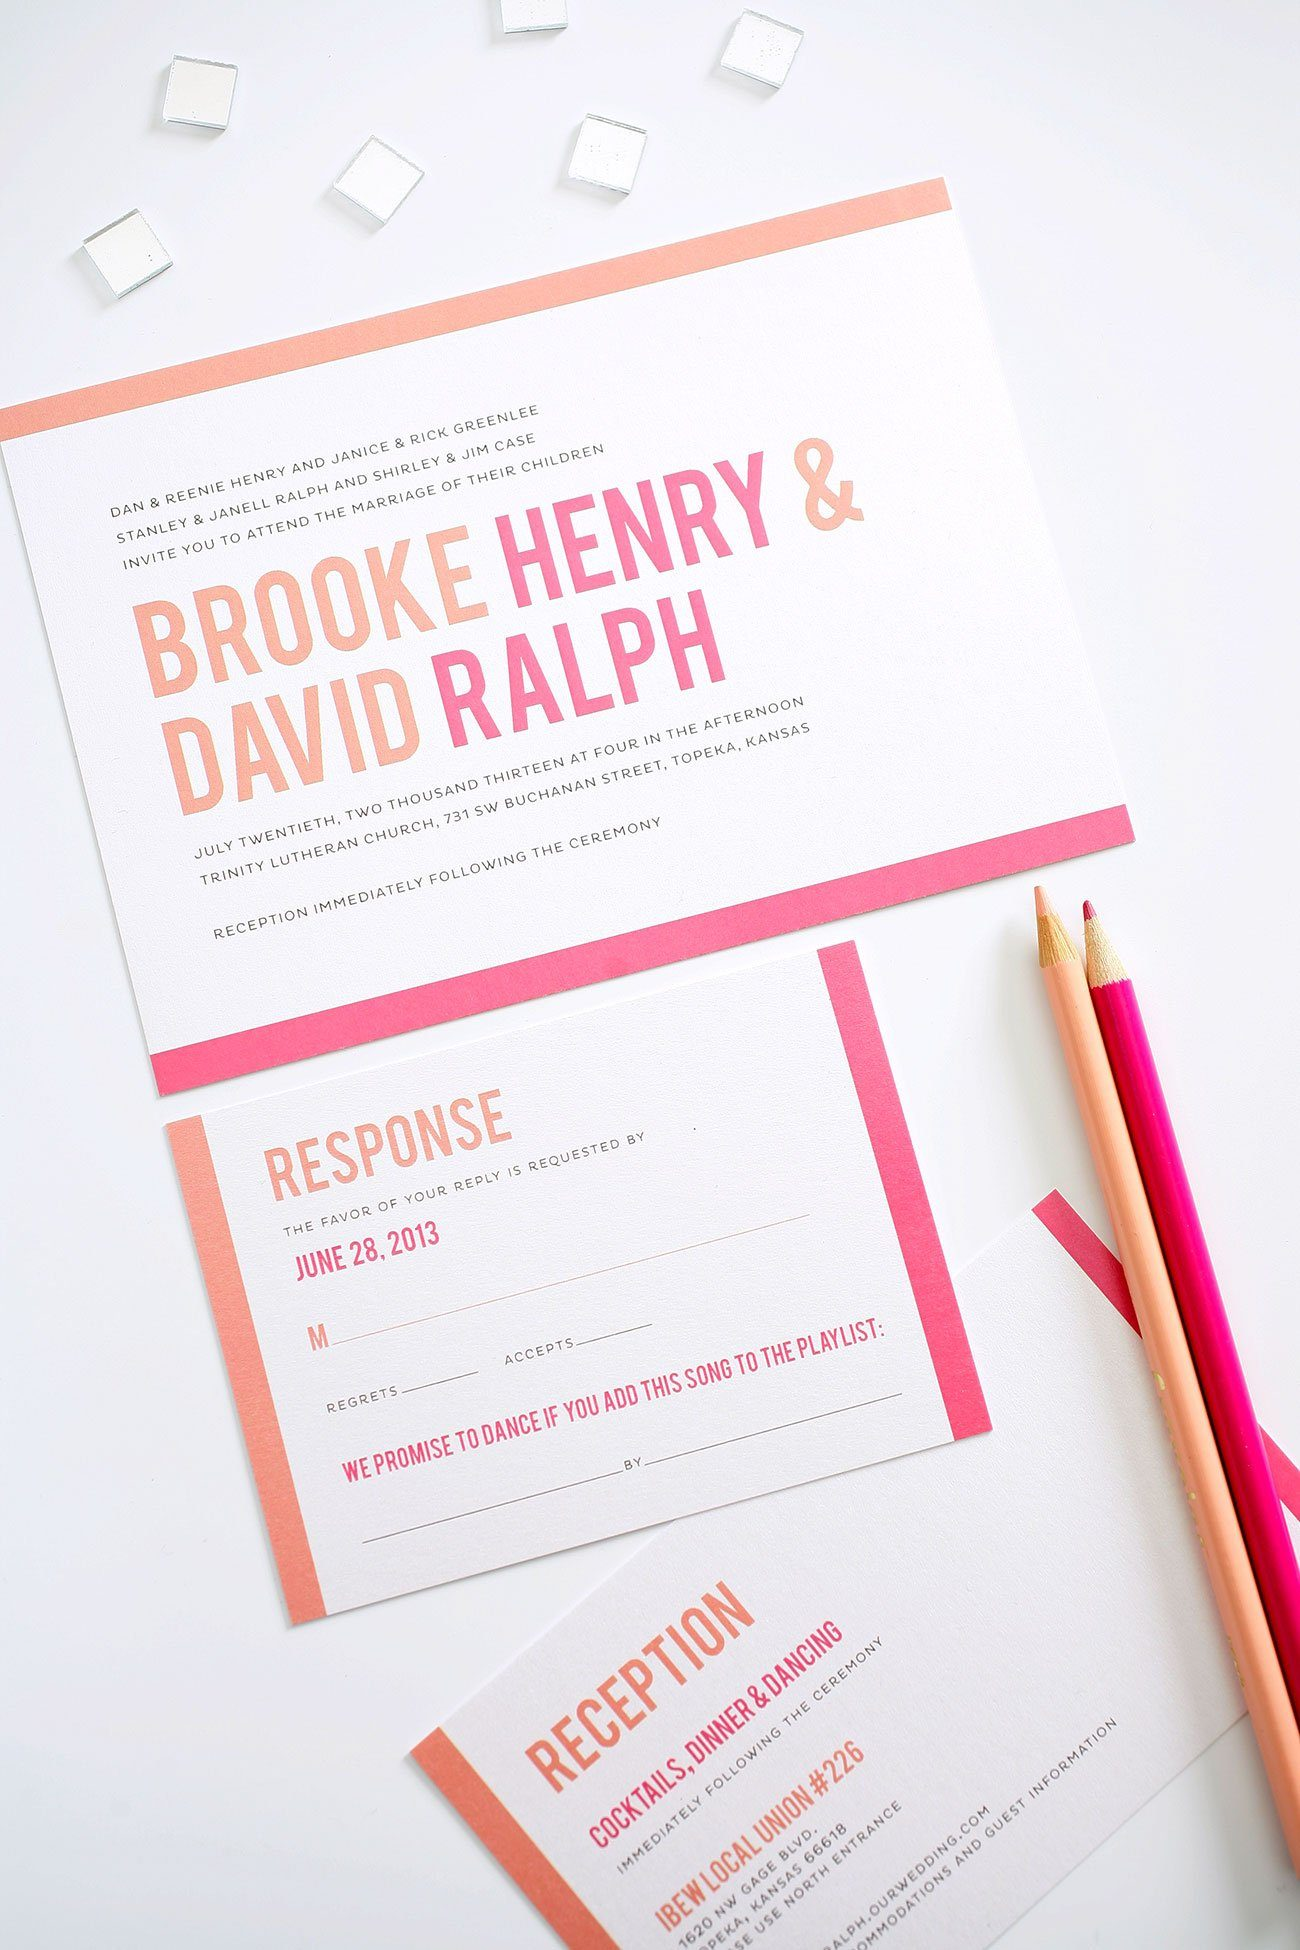 Wedding invitations in pink and orange